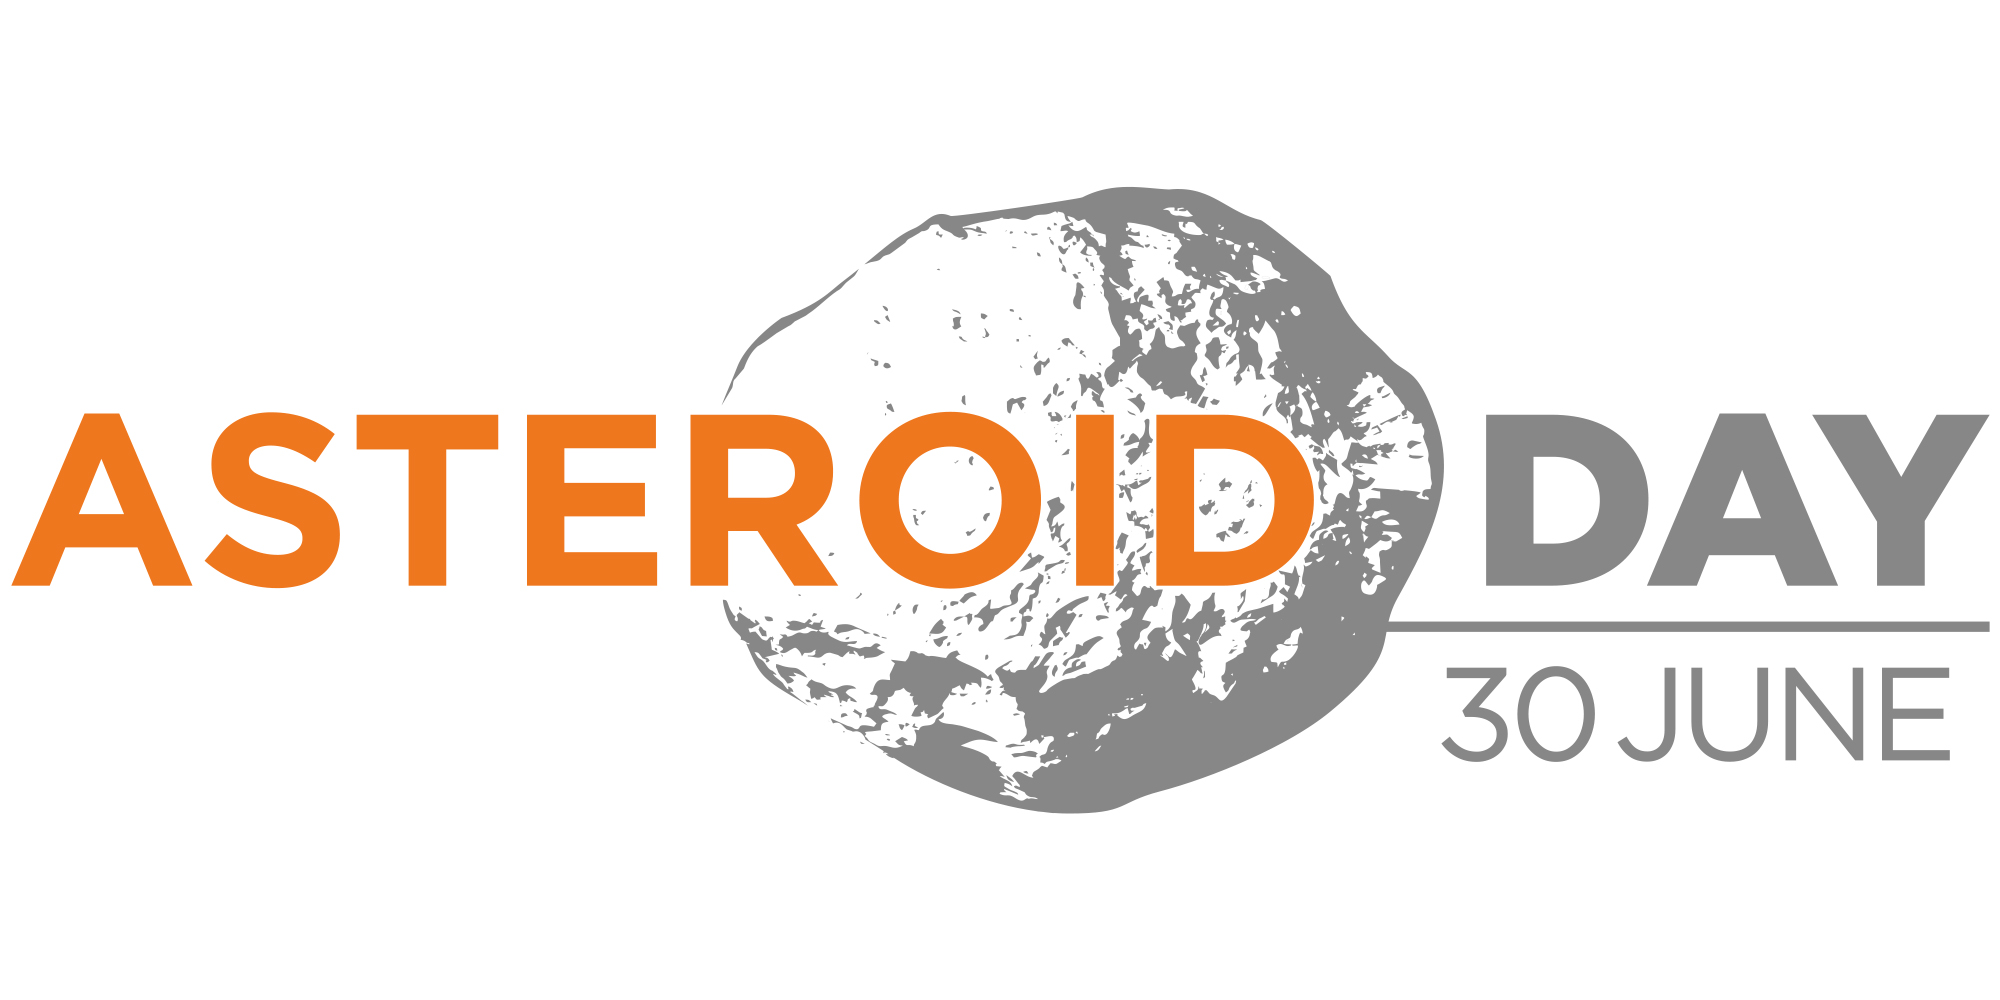 Asteroid Day 30 June